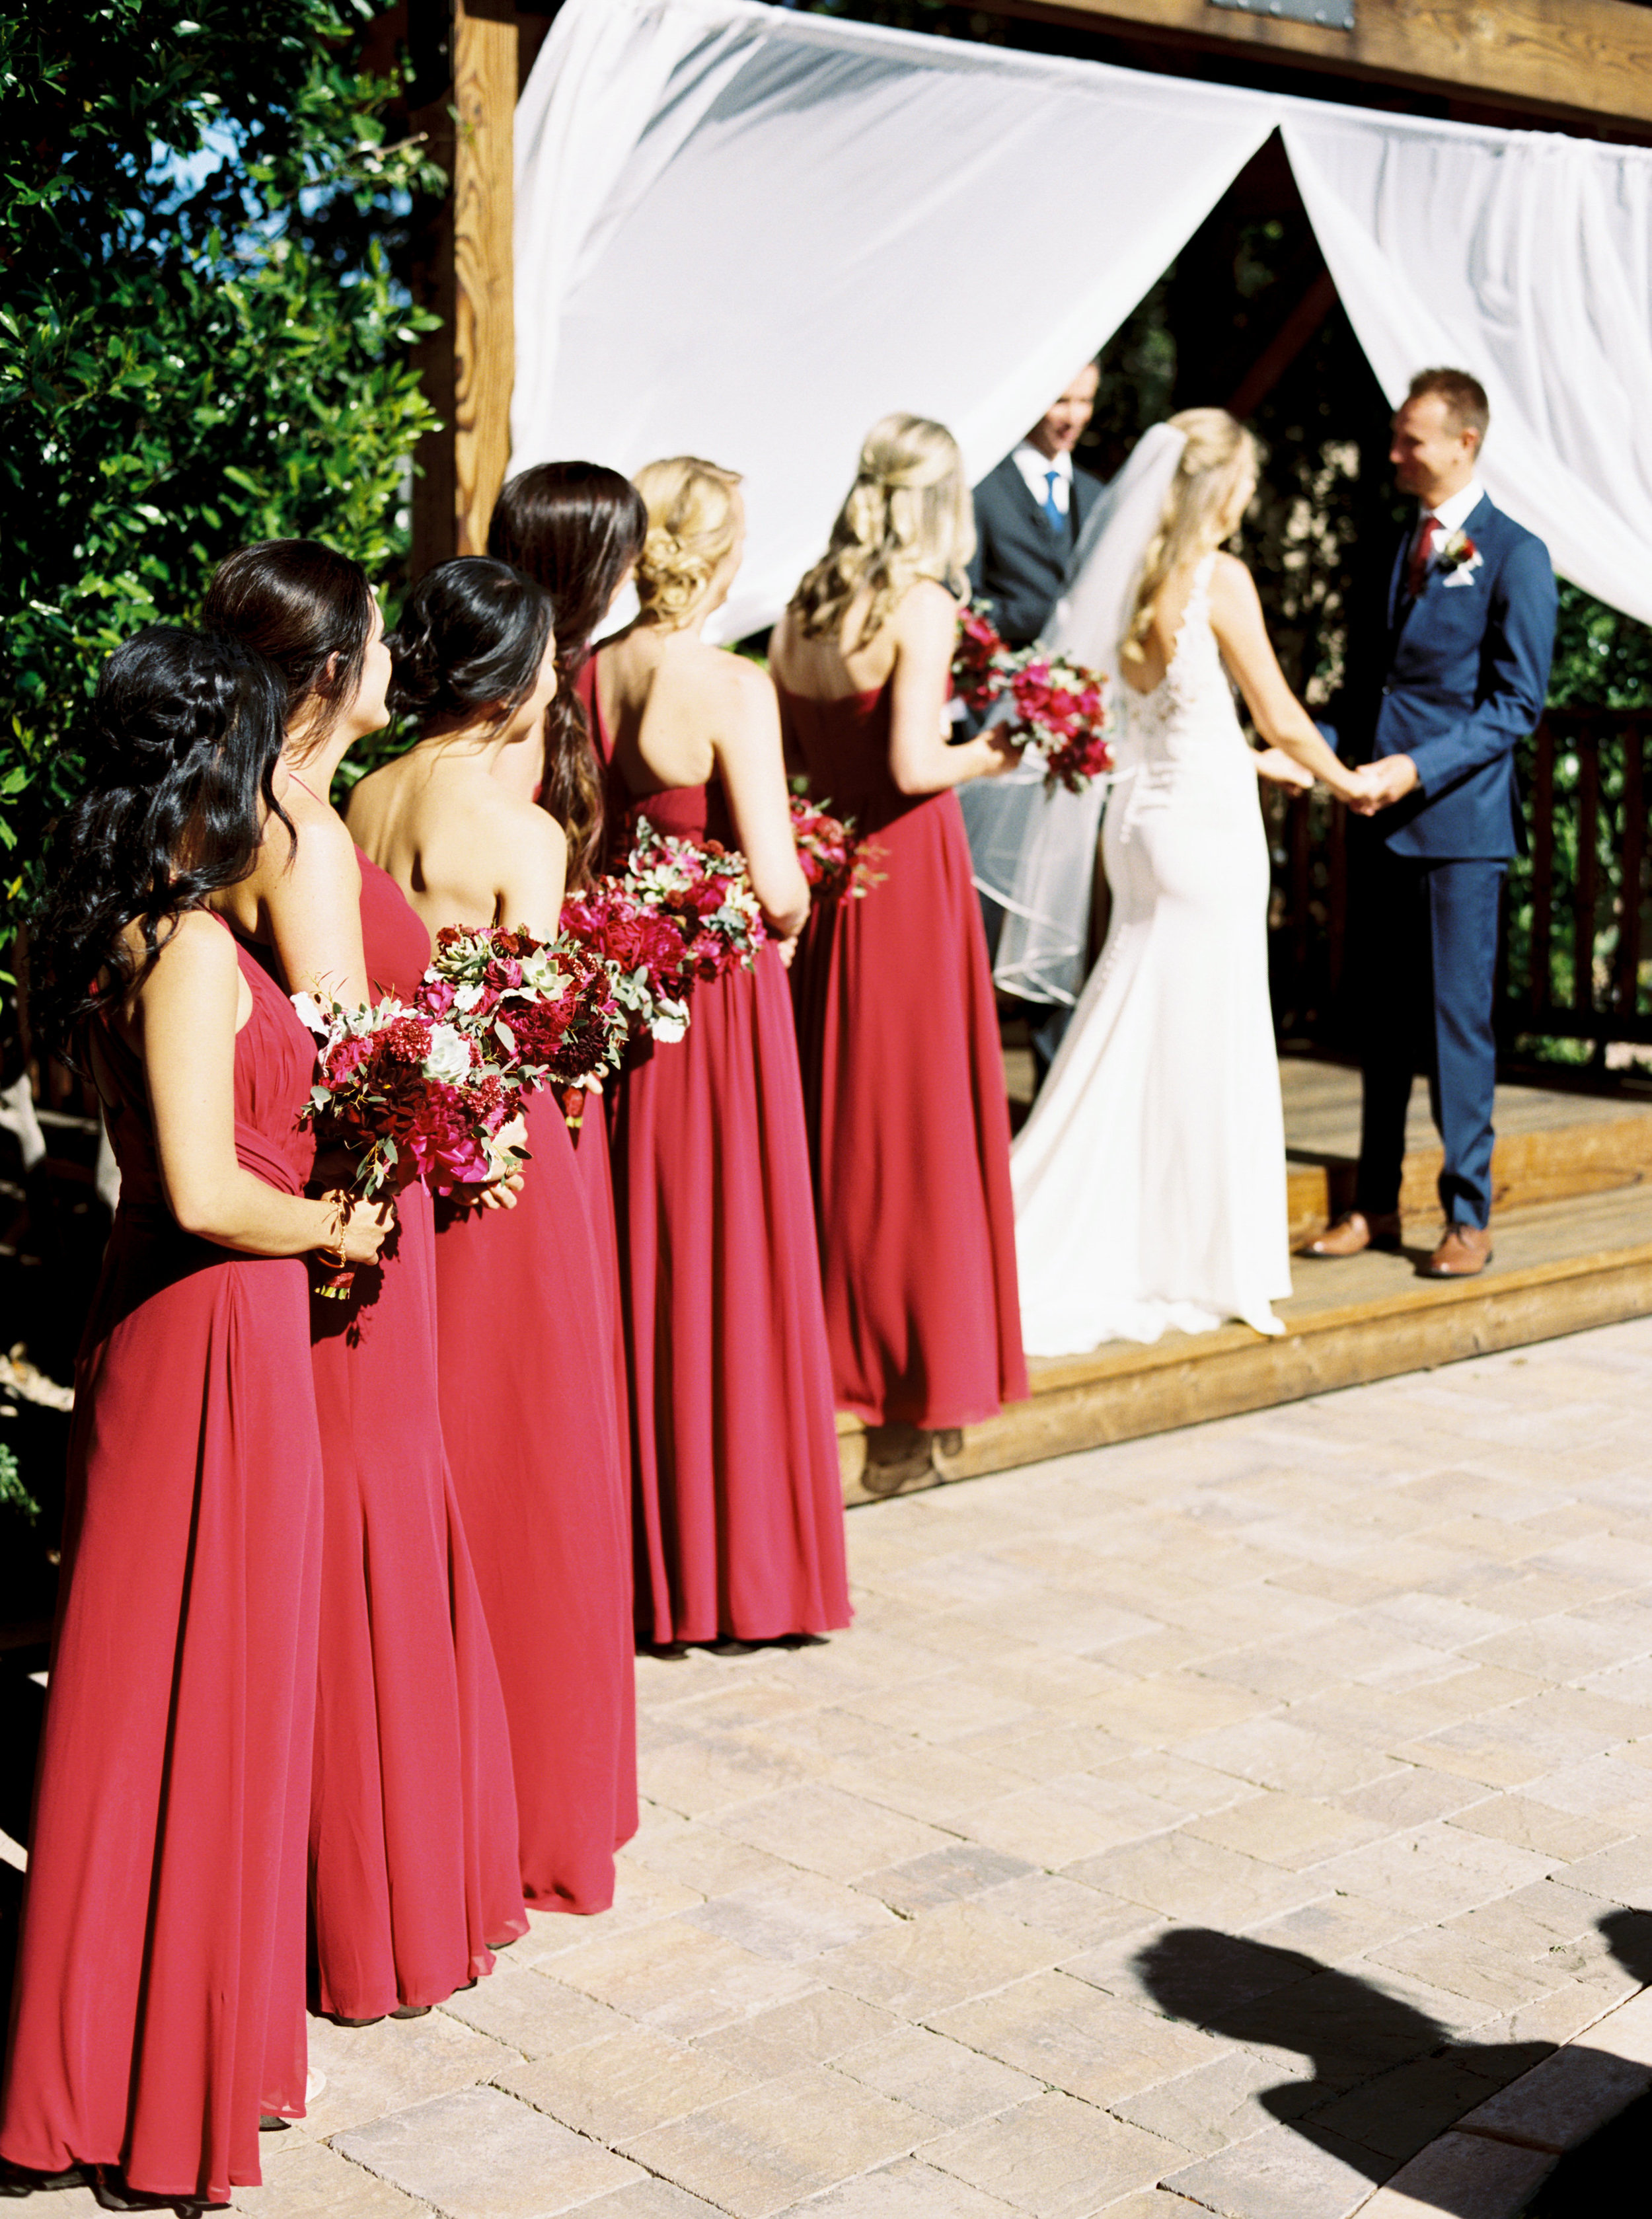 Crooked-vine-winery-wedding-in-livermore-california-8.jpg